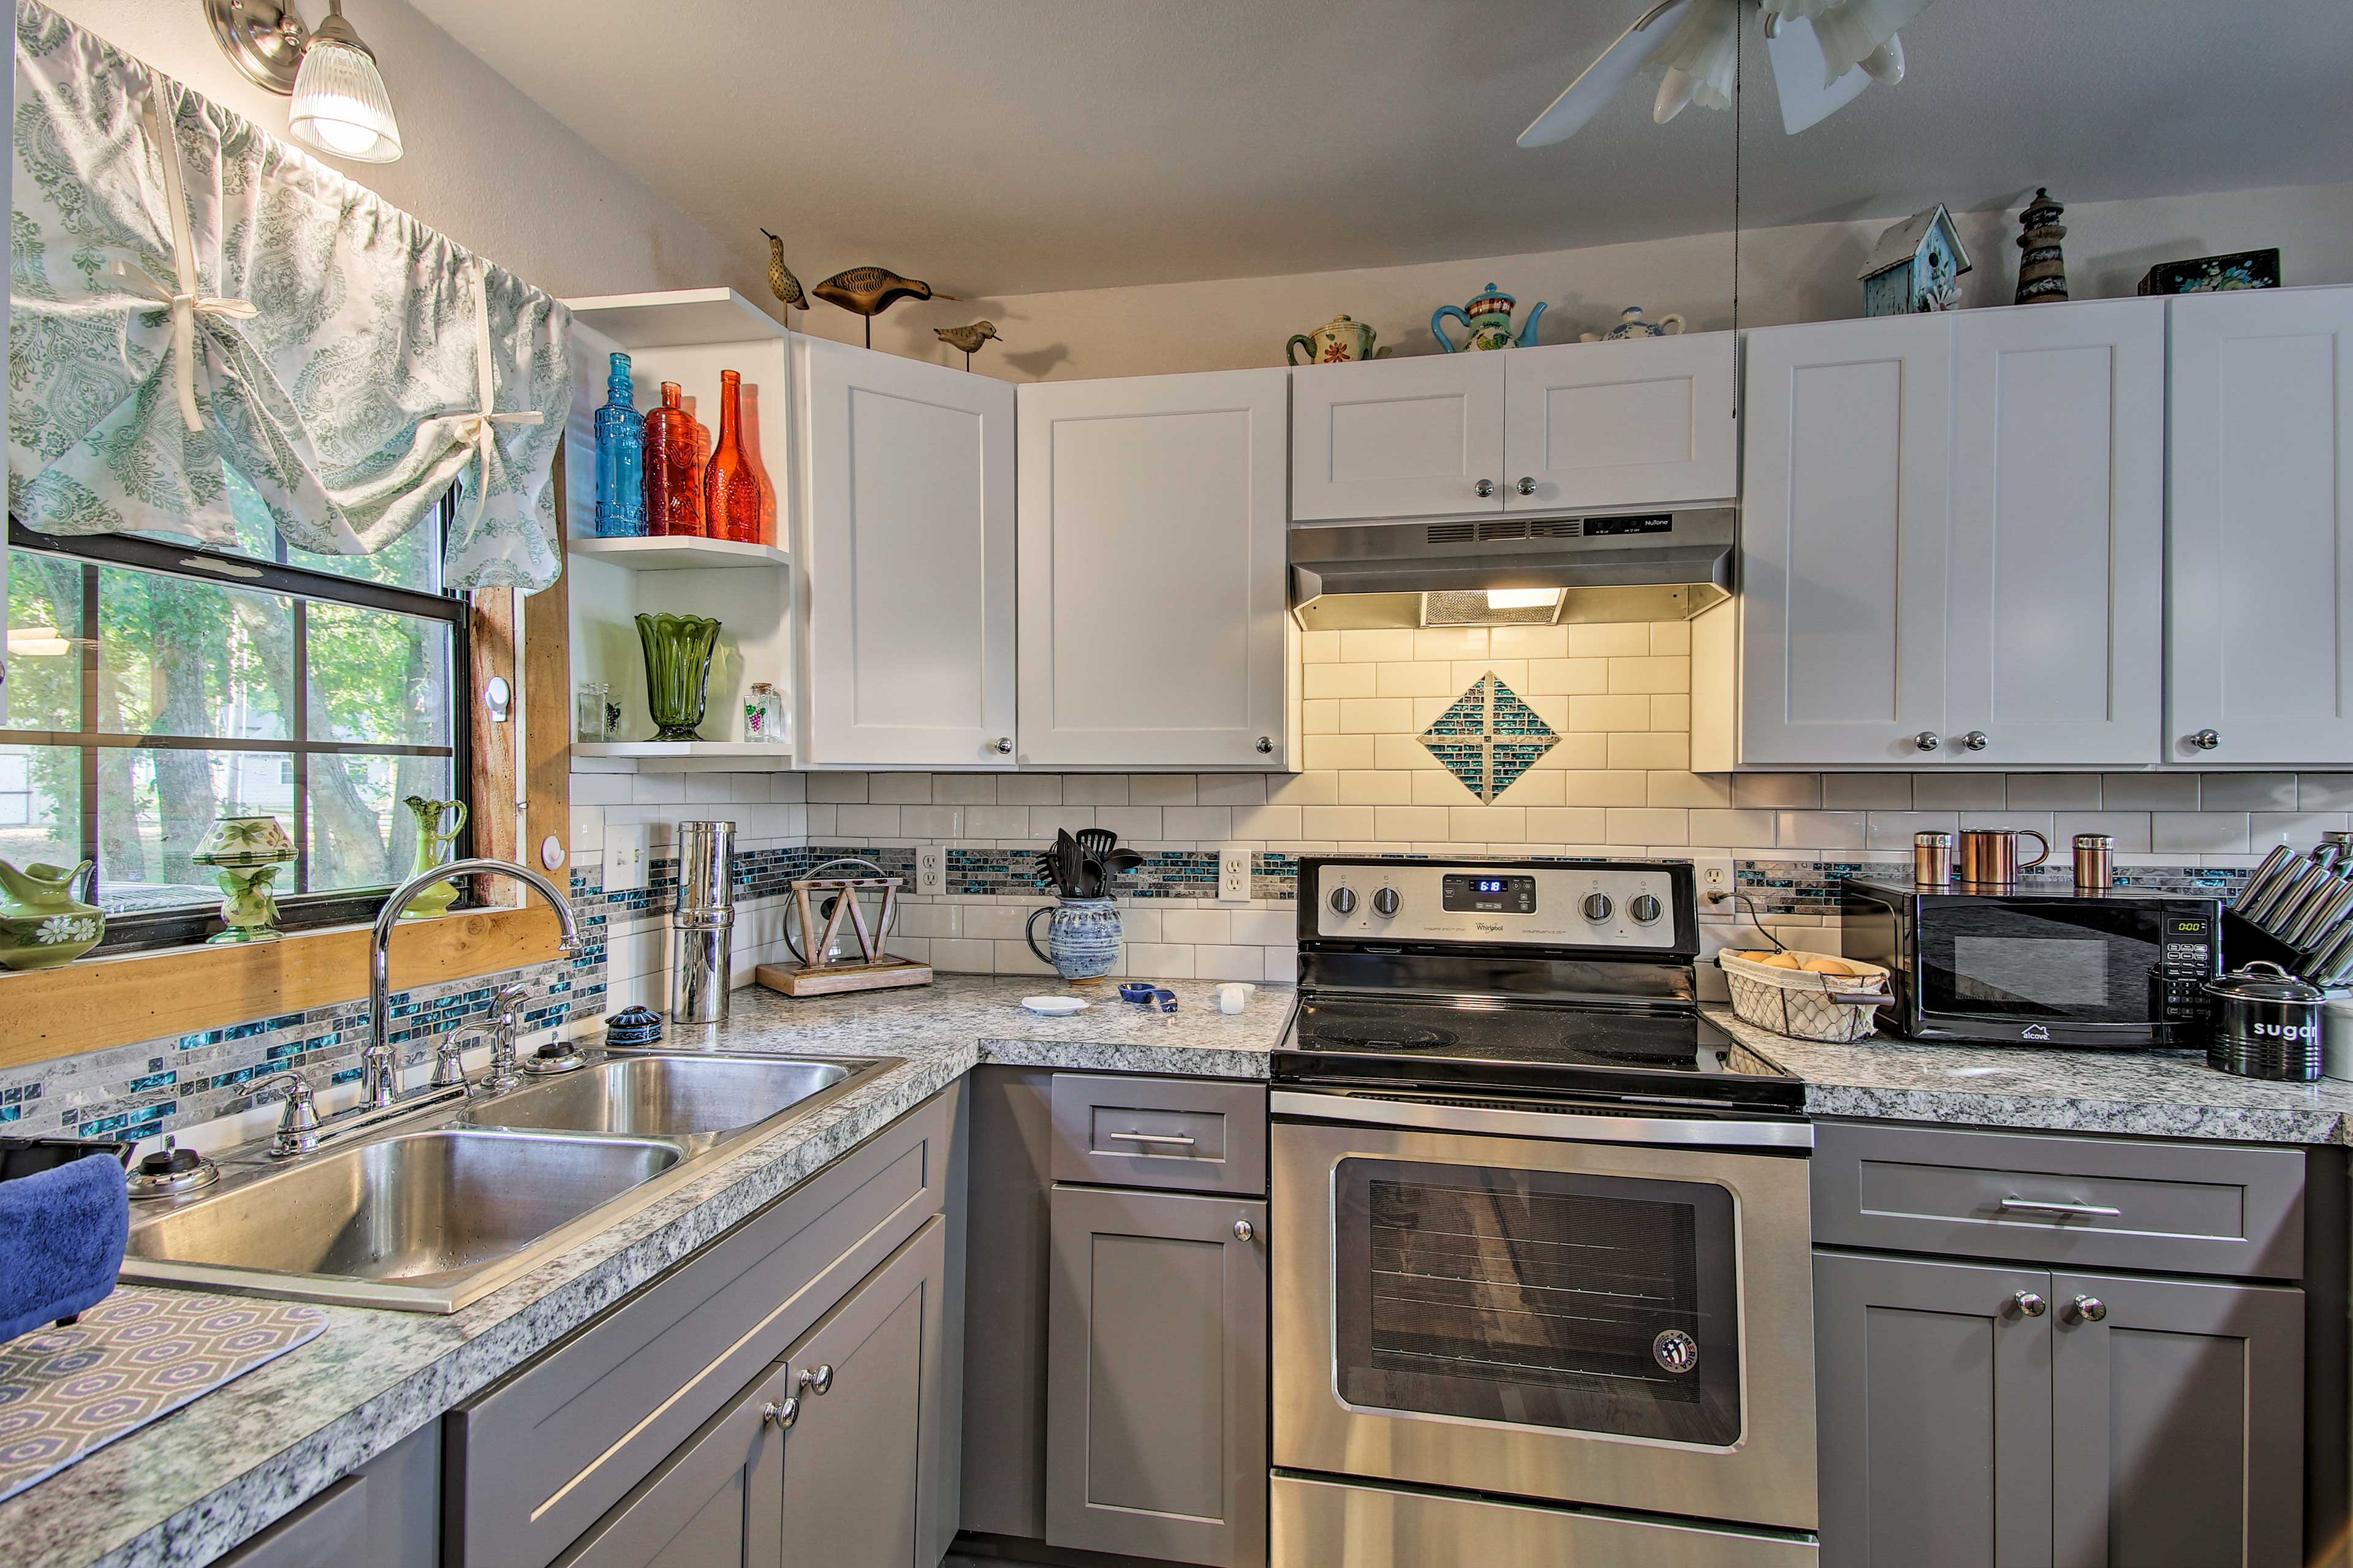 The well-equipped kitchen features a stove/oven, microwave, and refrigerator.